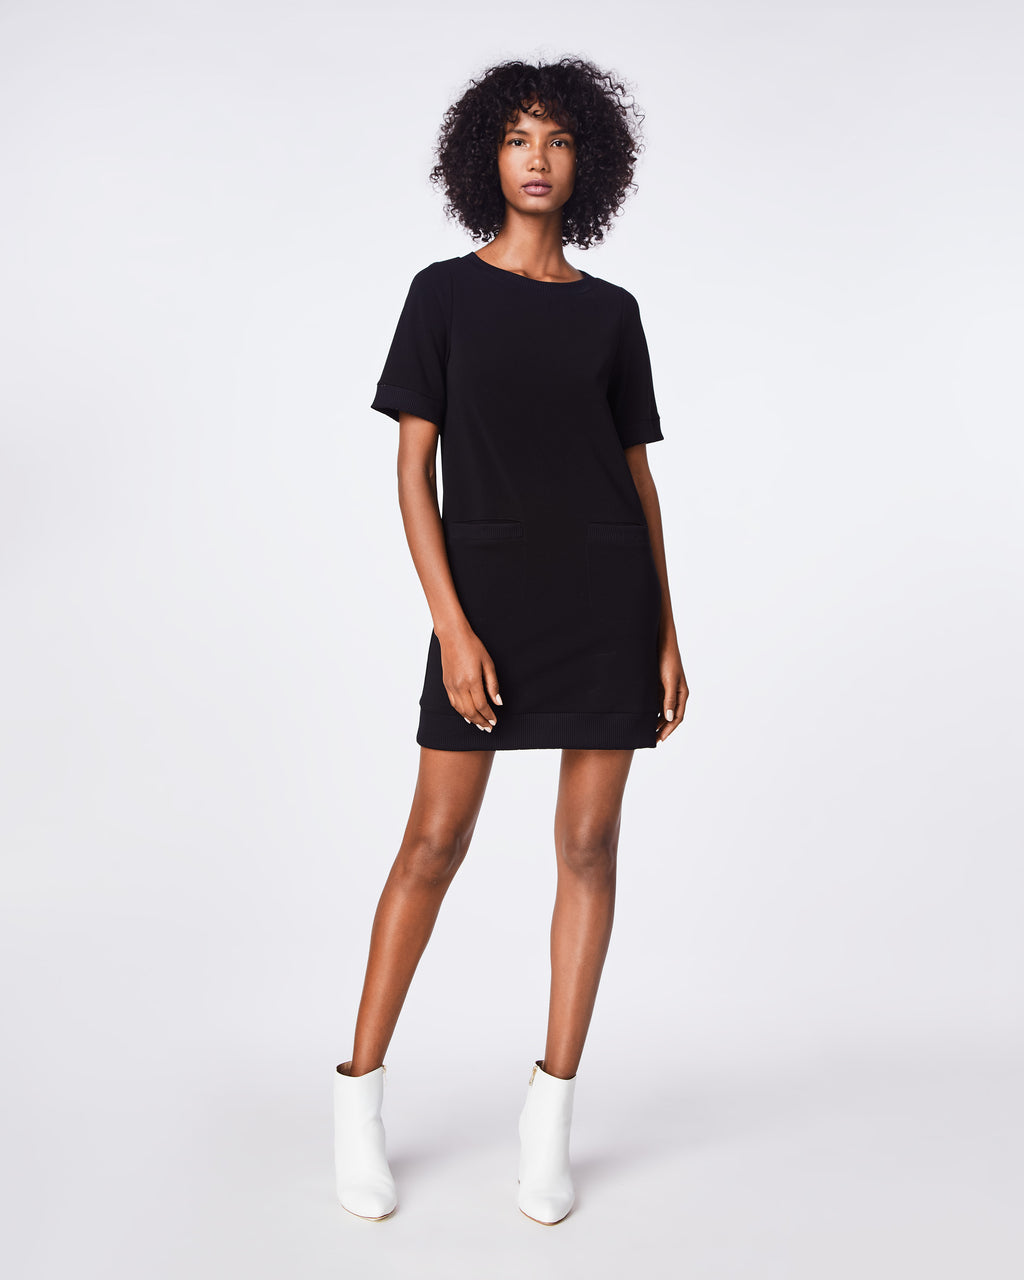 BH10428 - PONTE t-shirt dress - dresses - short - THIS SHORT SLEEVE PONTE KNIT DRESS IS WARDROBE STAPLE - SIMPLE, VERSATILE, AND COMFORTABLE.